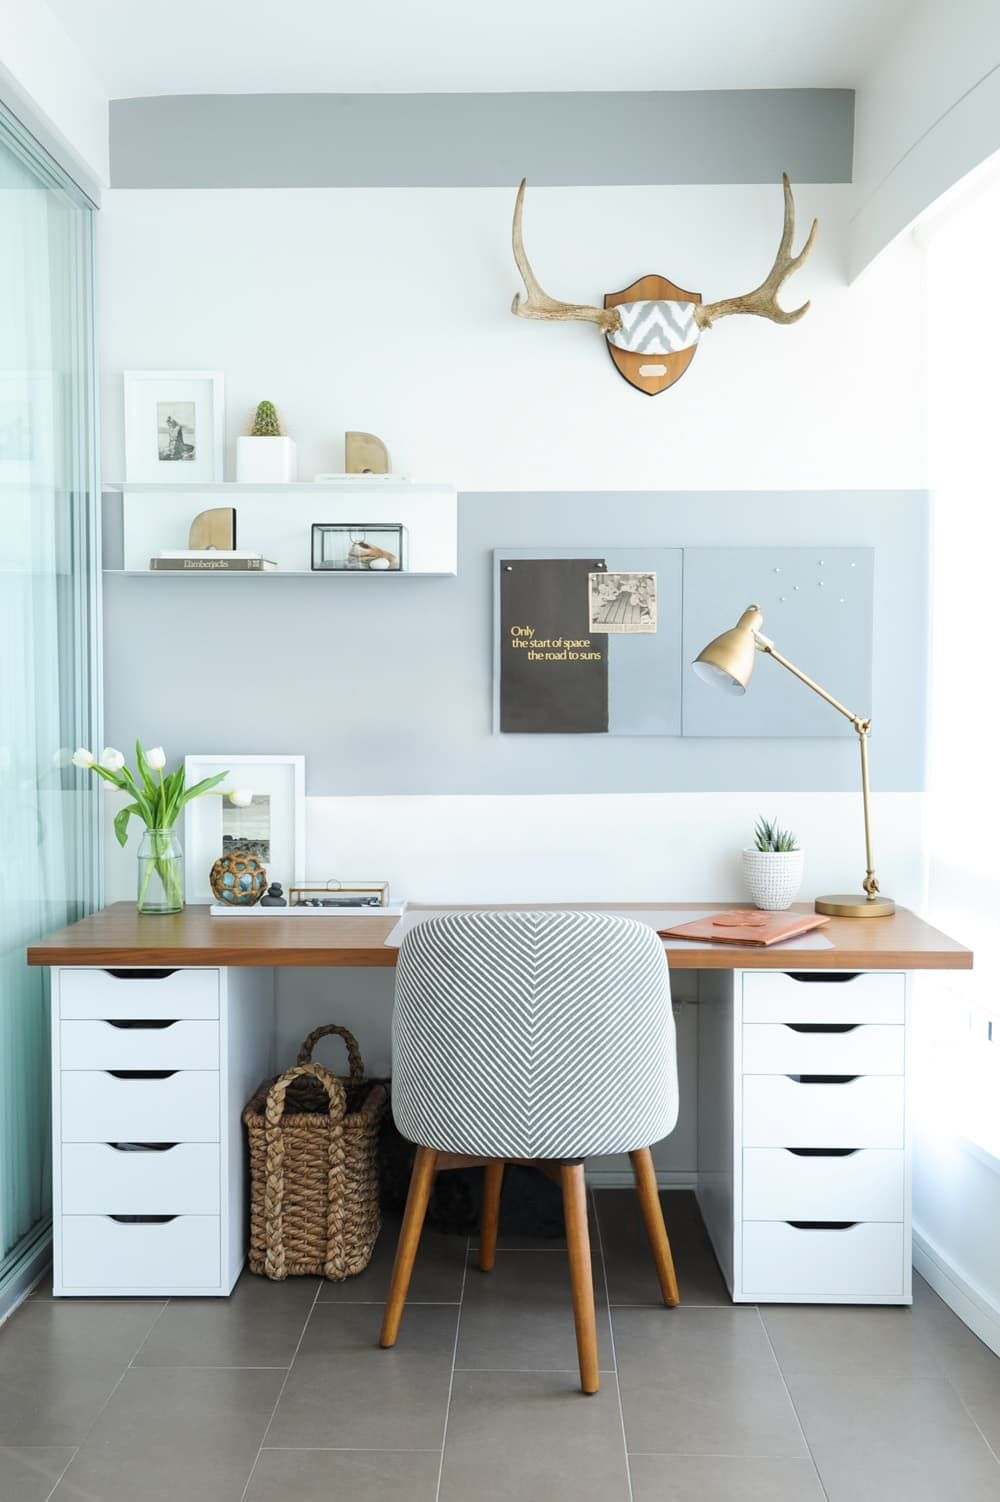 Arbeitszimmer ikea  DIY Desks You Can Make In Less Than a Minute (Seriously!) | Ikea ...